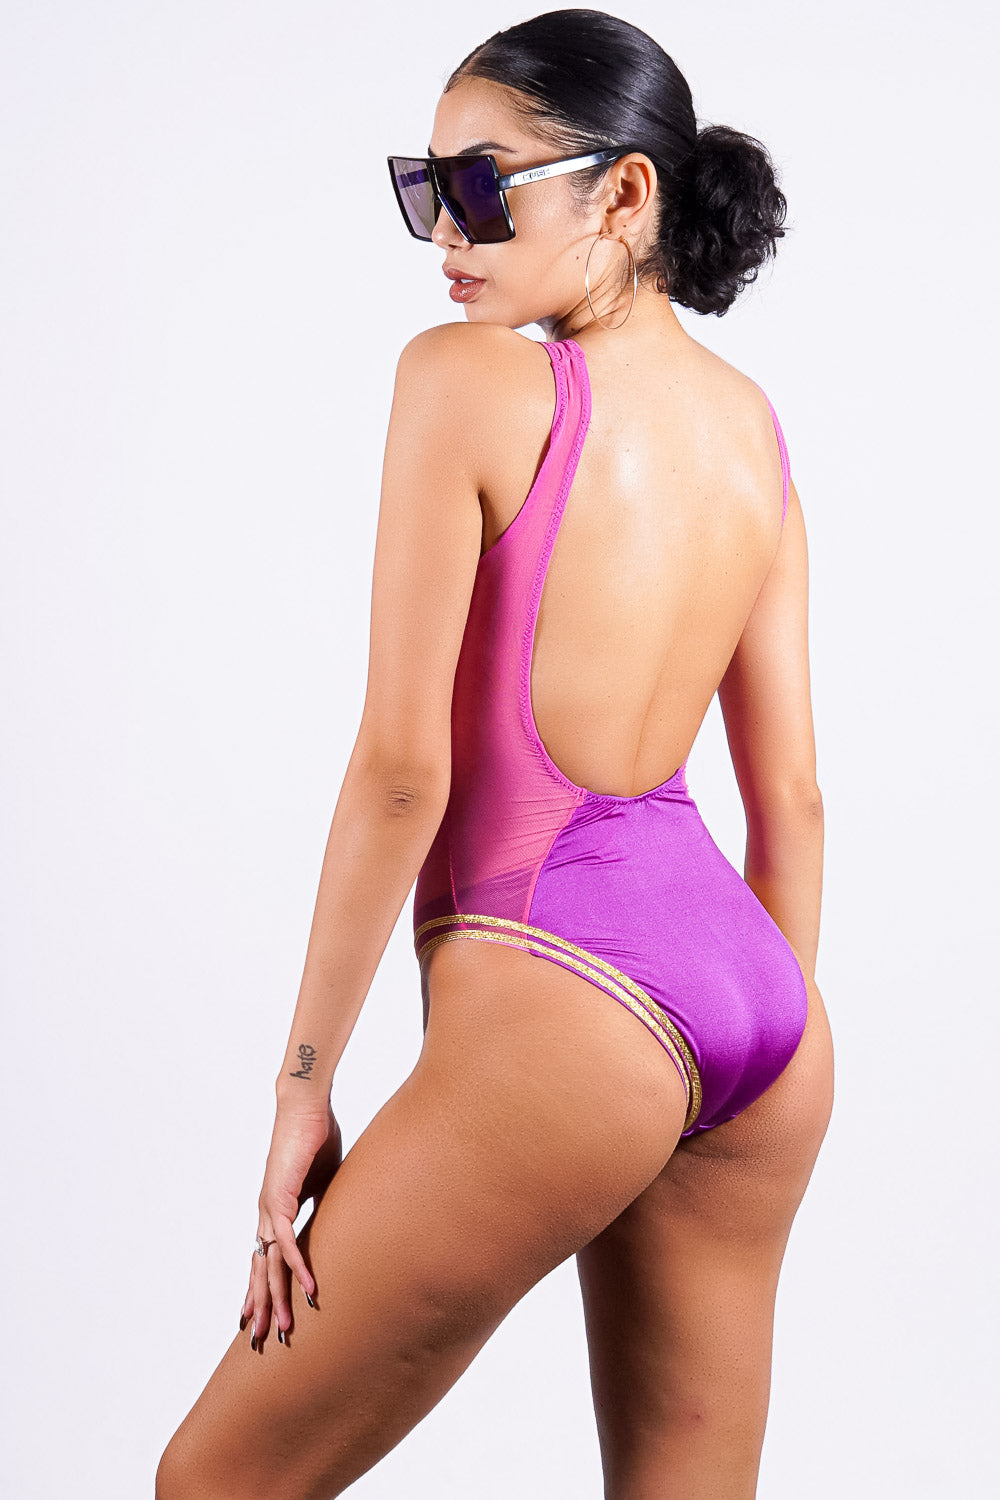 Matira Beach one piece, purple